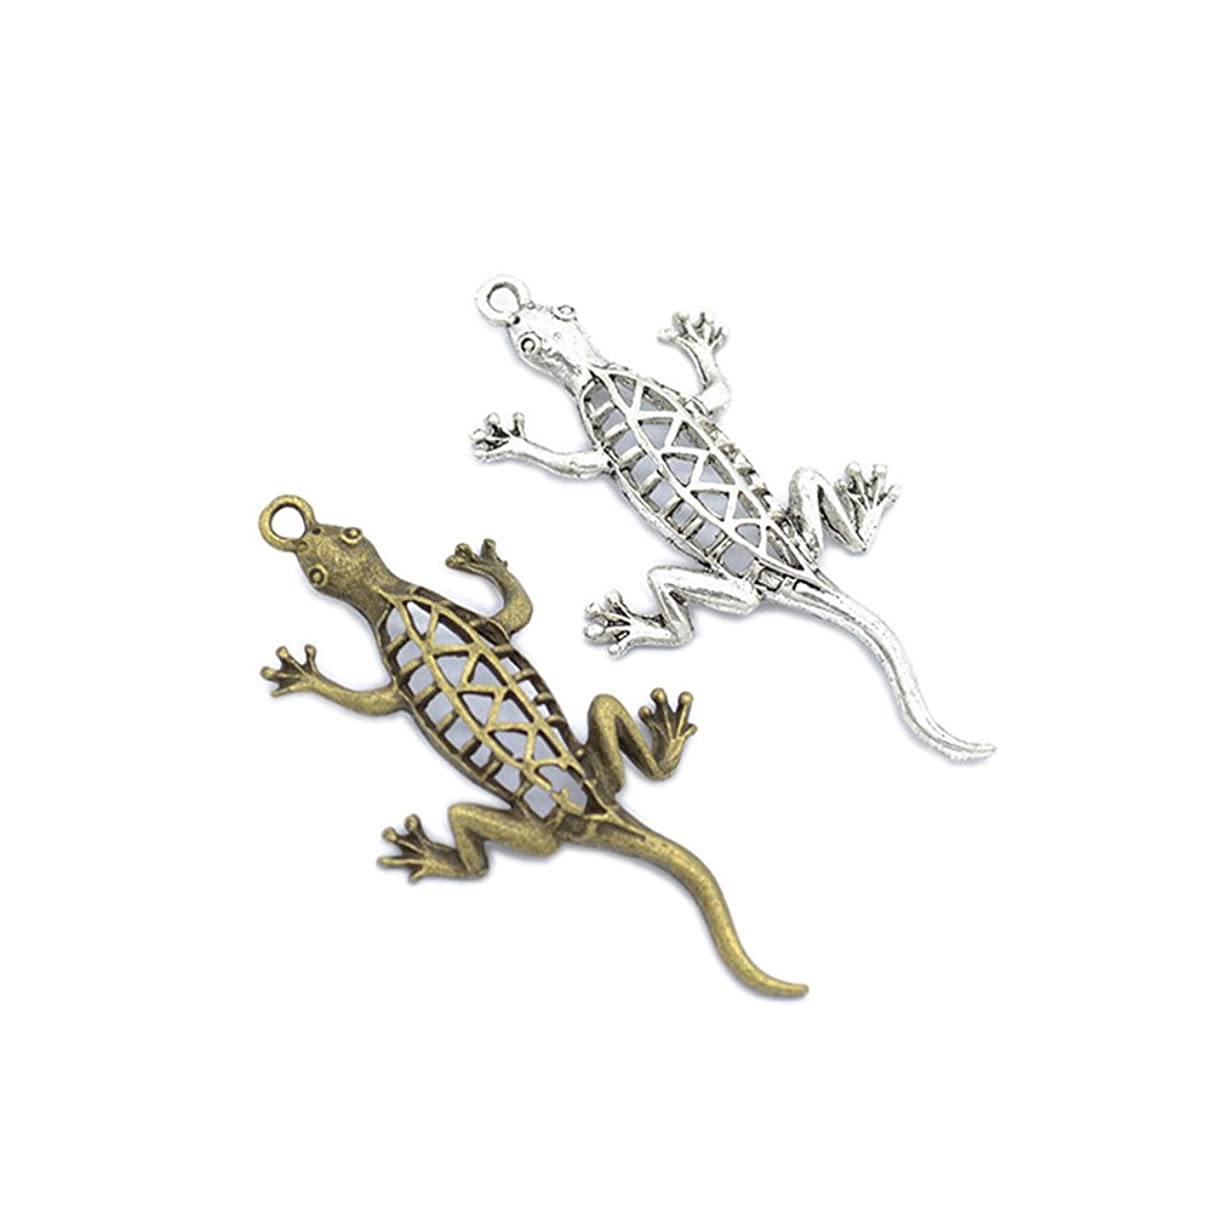 30PCS Alloy Antique Silver Animal Small Lizard Gecko Charms for Pendant Necklace Finding Jewelry Making DIY Accessories 51x26mm (30pcs)